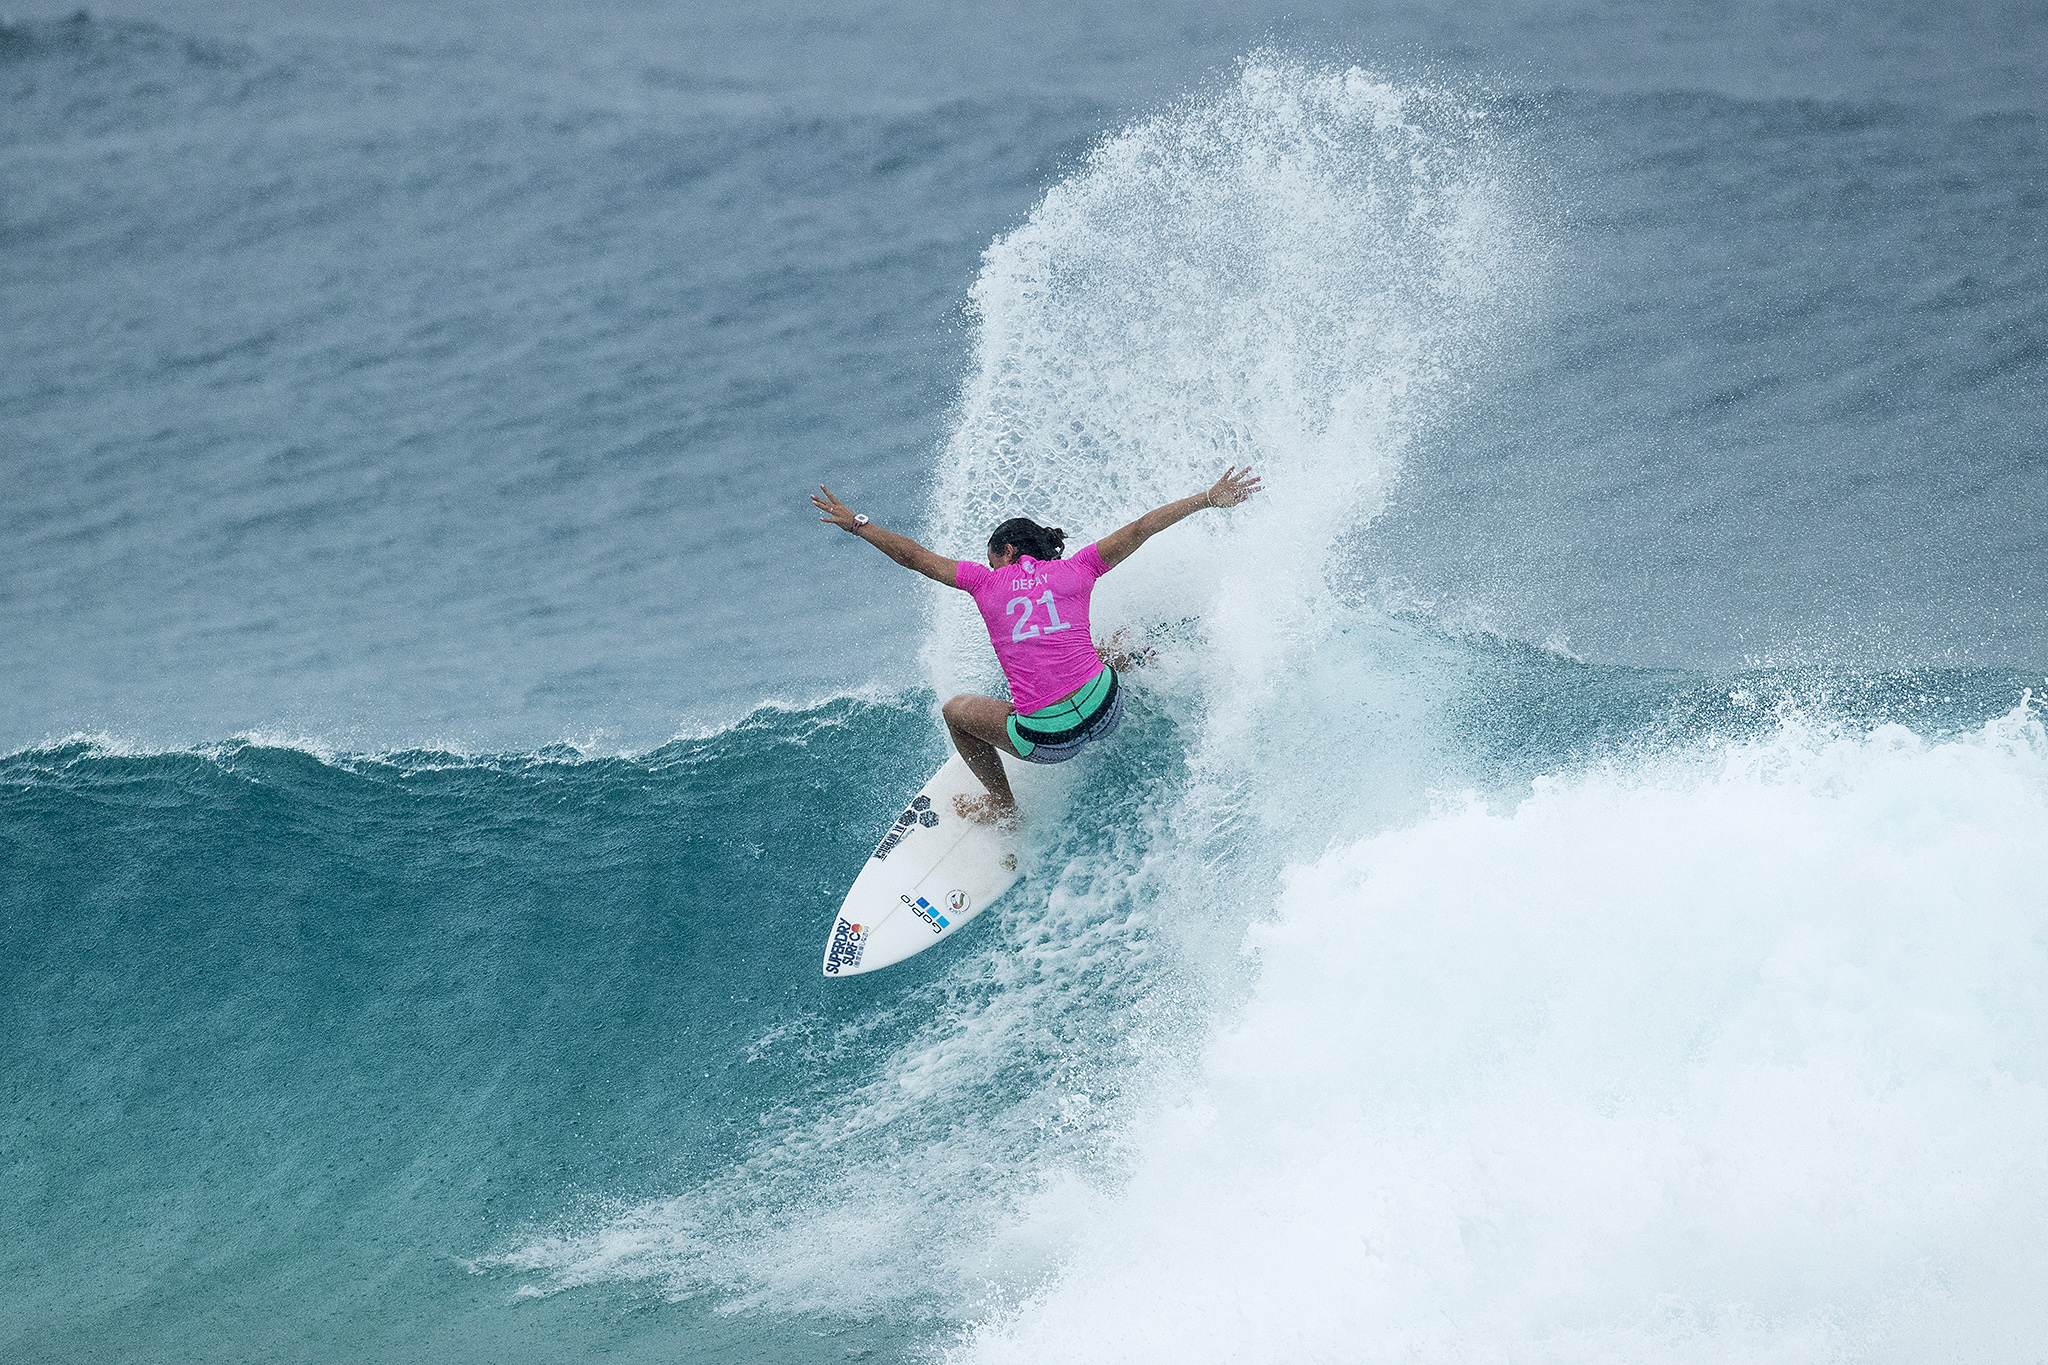 0bf69d0734 OWEN WRIGHT AND STEPHANIE GILMORE WIN QUIKSILVER AND ROXY PRO GOLD COAST